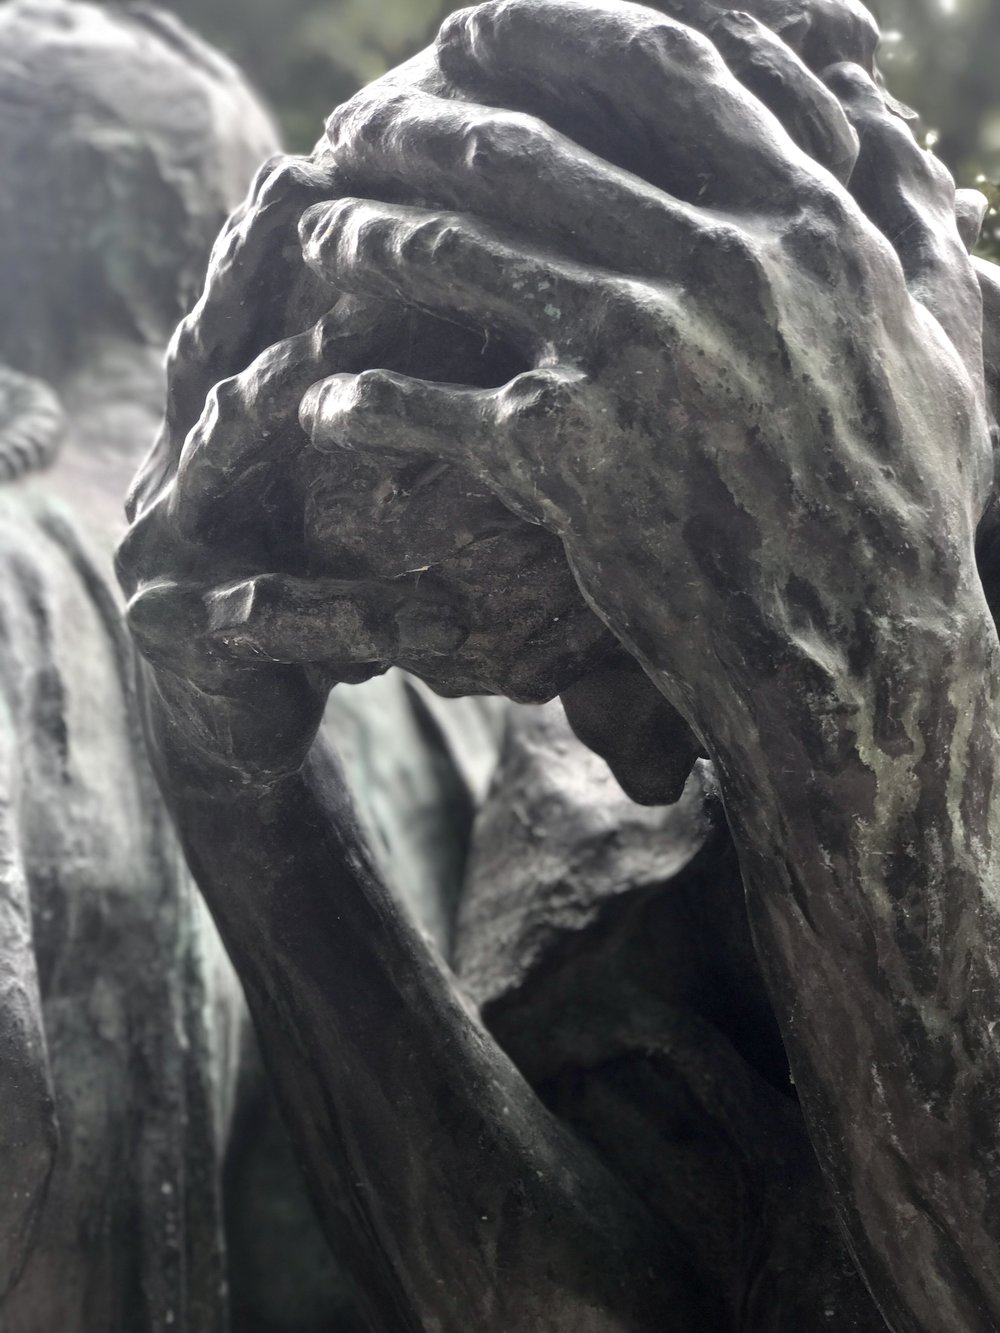 A close up on one of Rodin's Burghers of Calais - a great visual for the feeling of lack - his head hangs so low, he can't even see his options!